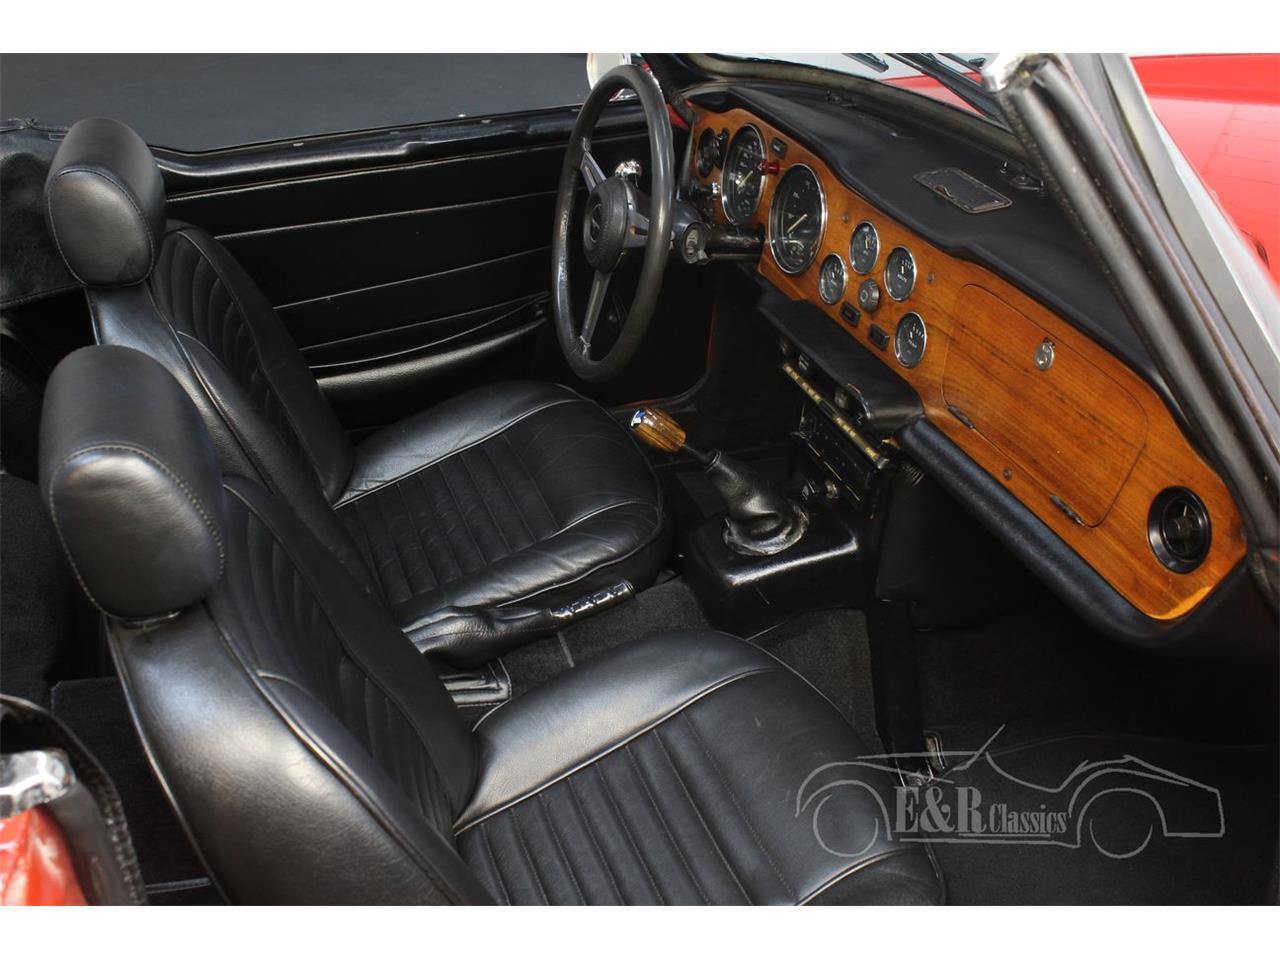 Large Picture of '73 Triumph TR6 Offered by E & R Classics - PWMQ